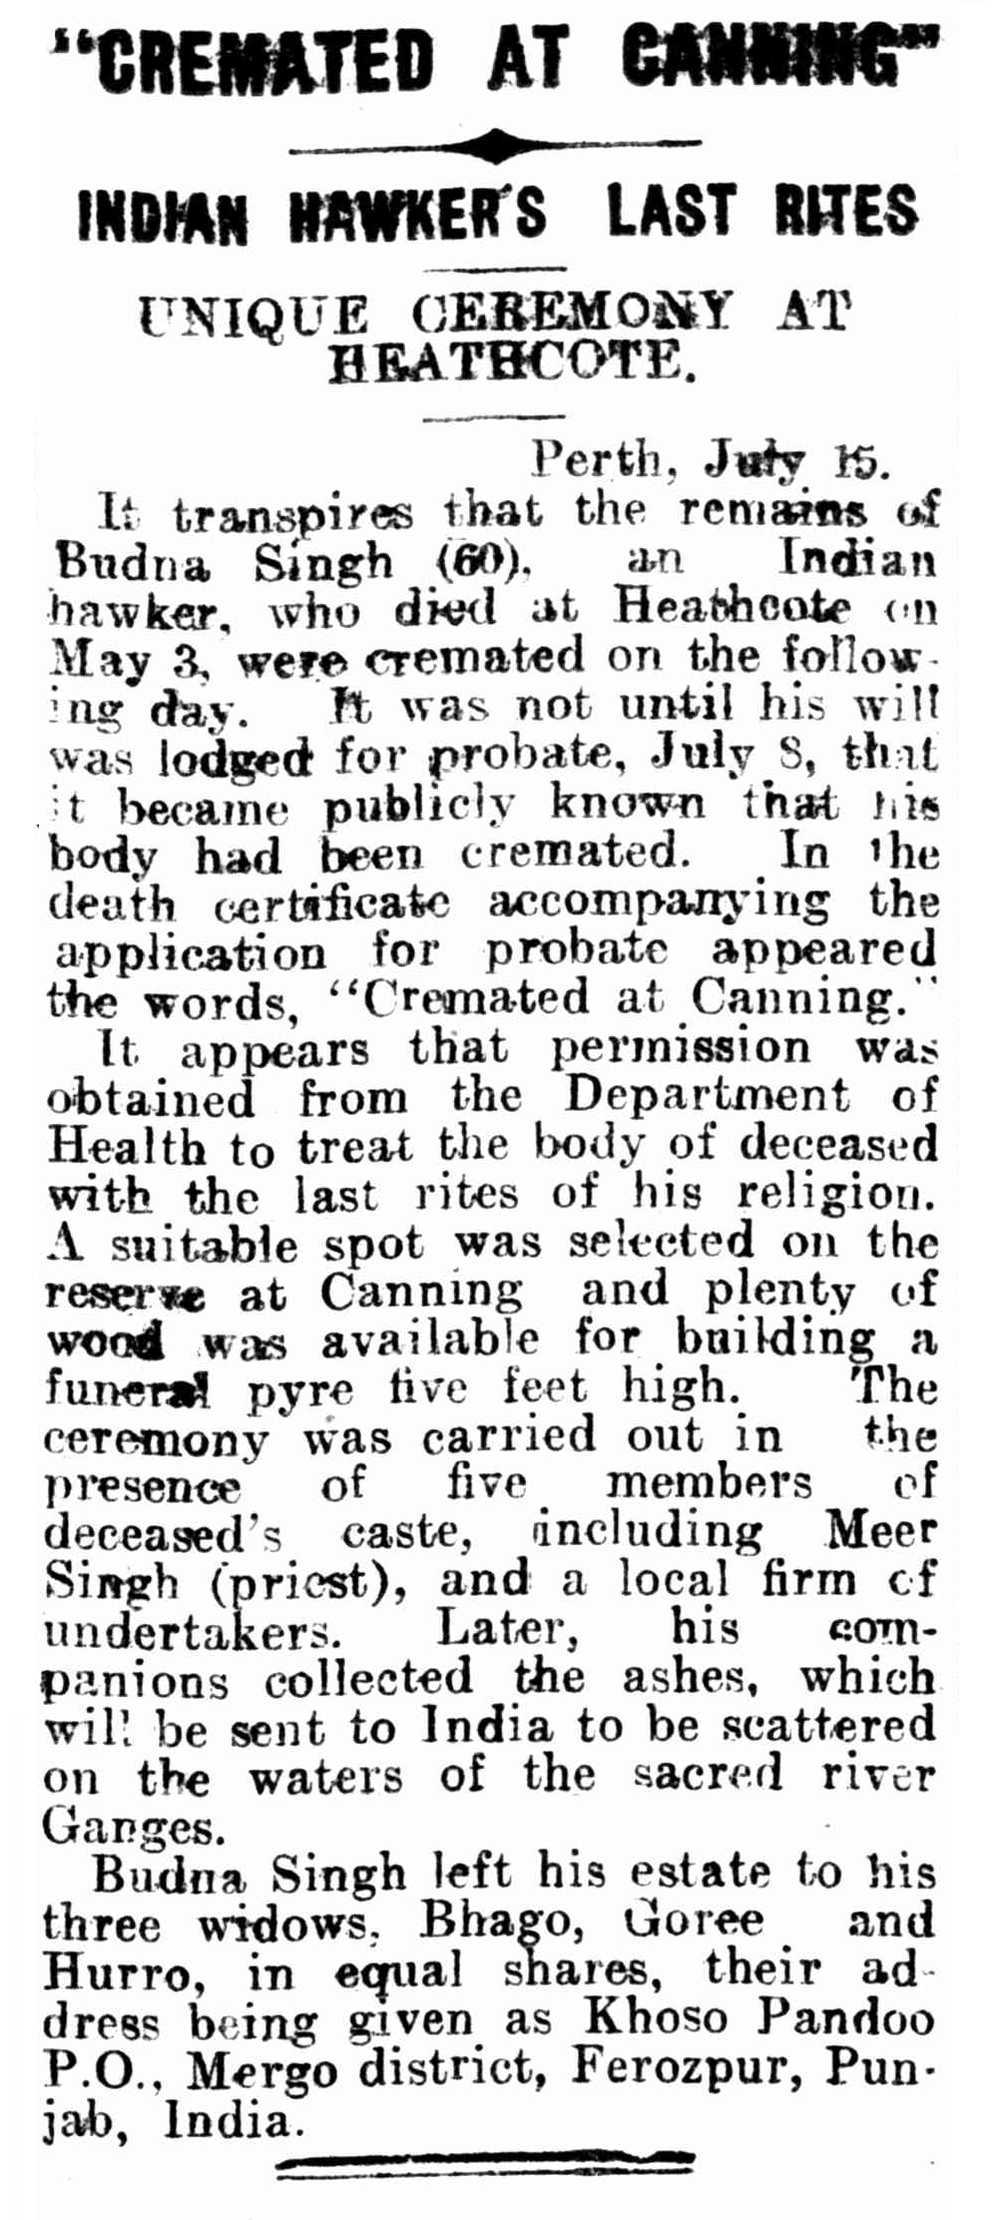 Kalgoorlie Miner (WA : 1895 - 1950), Tuesday 16 July 1929, page 4